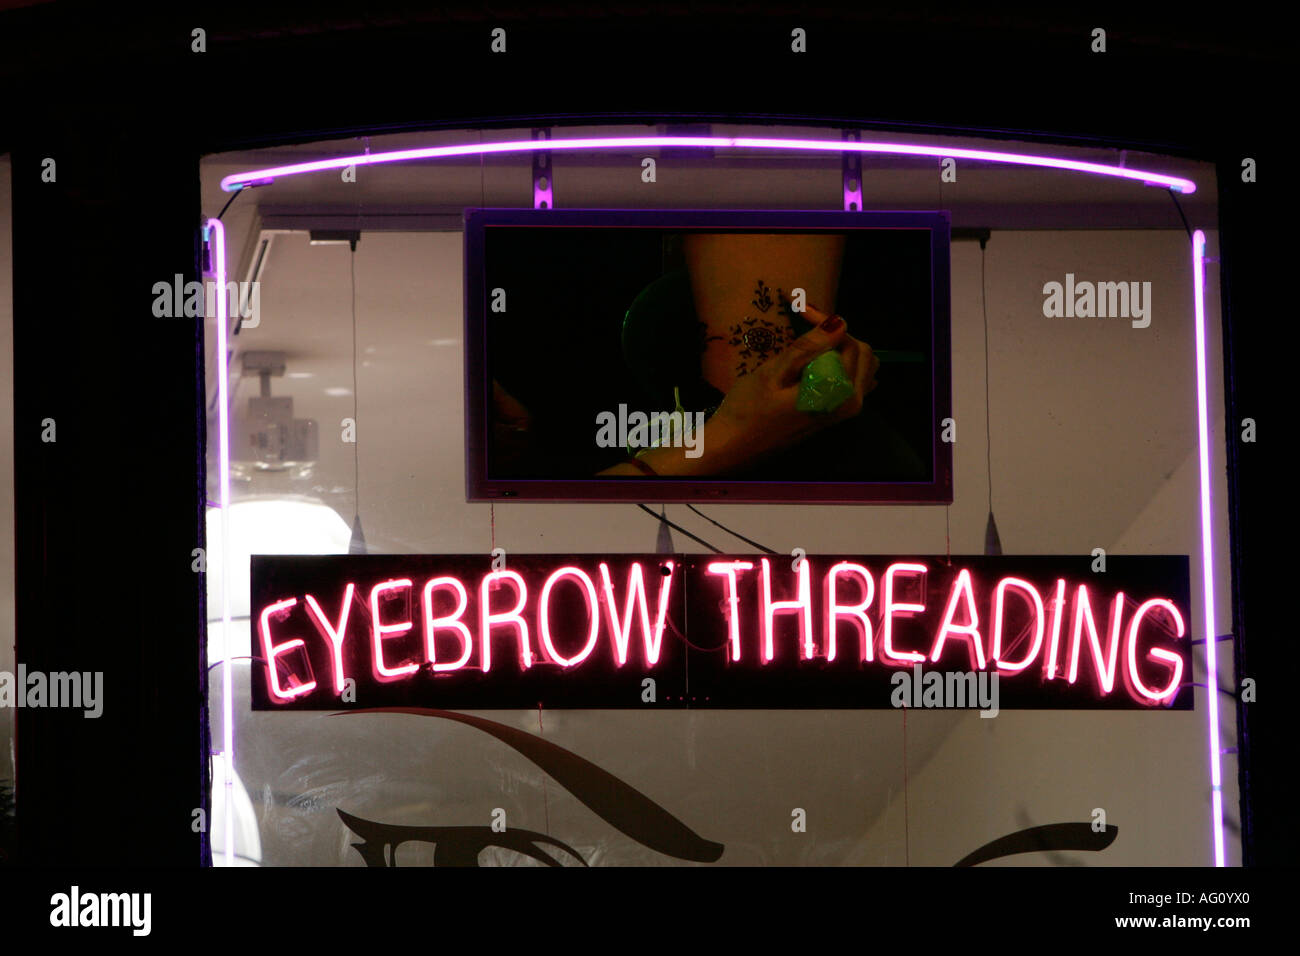 Eyebrow Threading Stock Photos & Eyebrow Threading Stock Images - Alamy